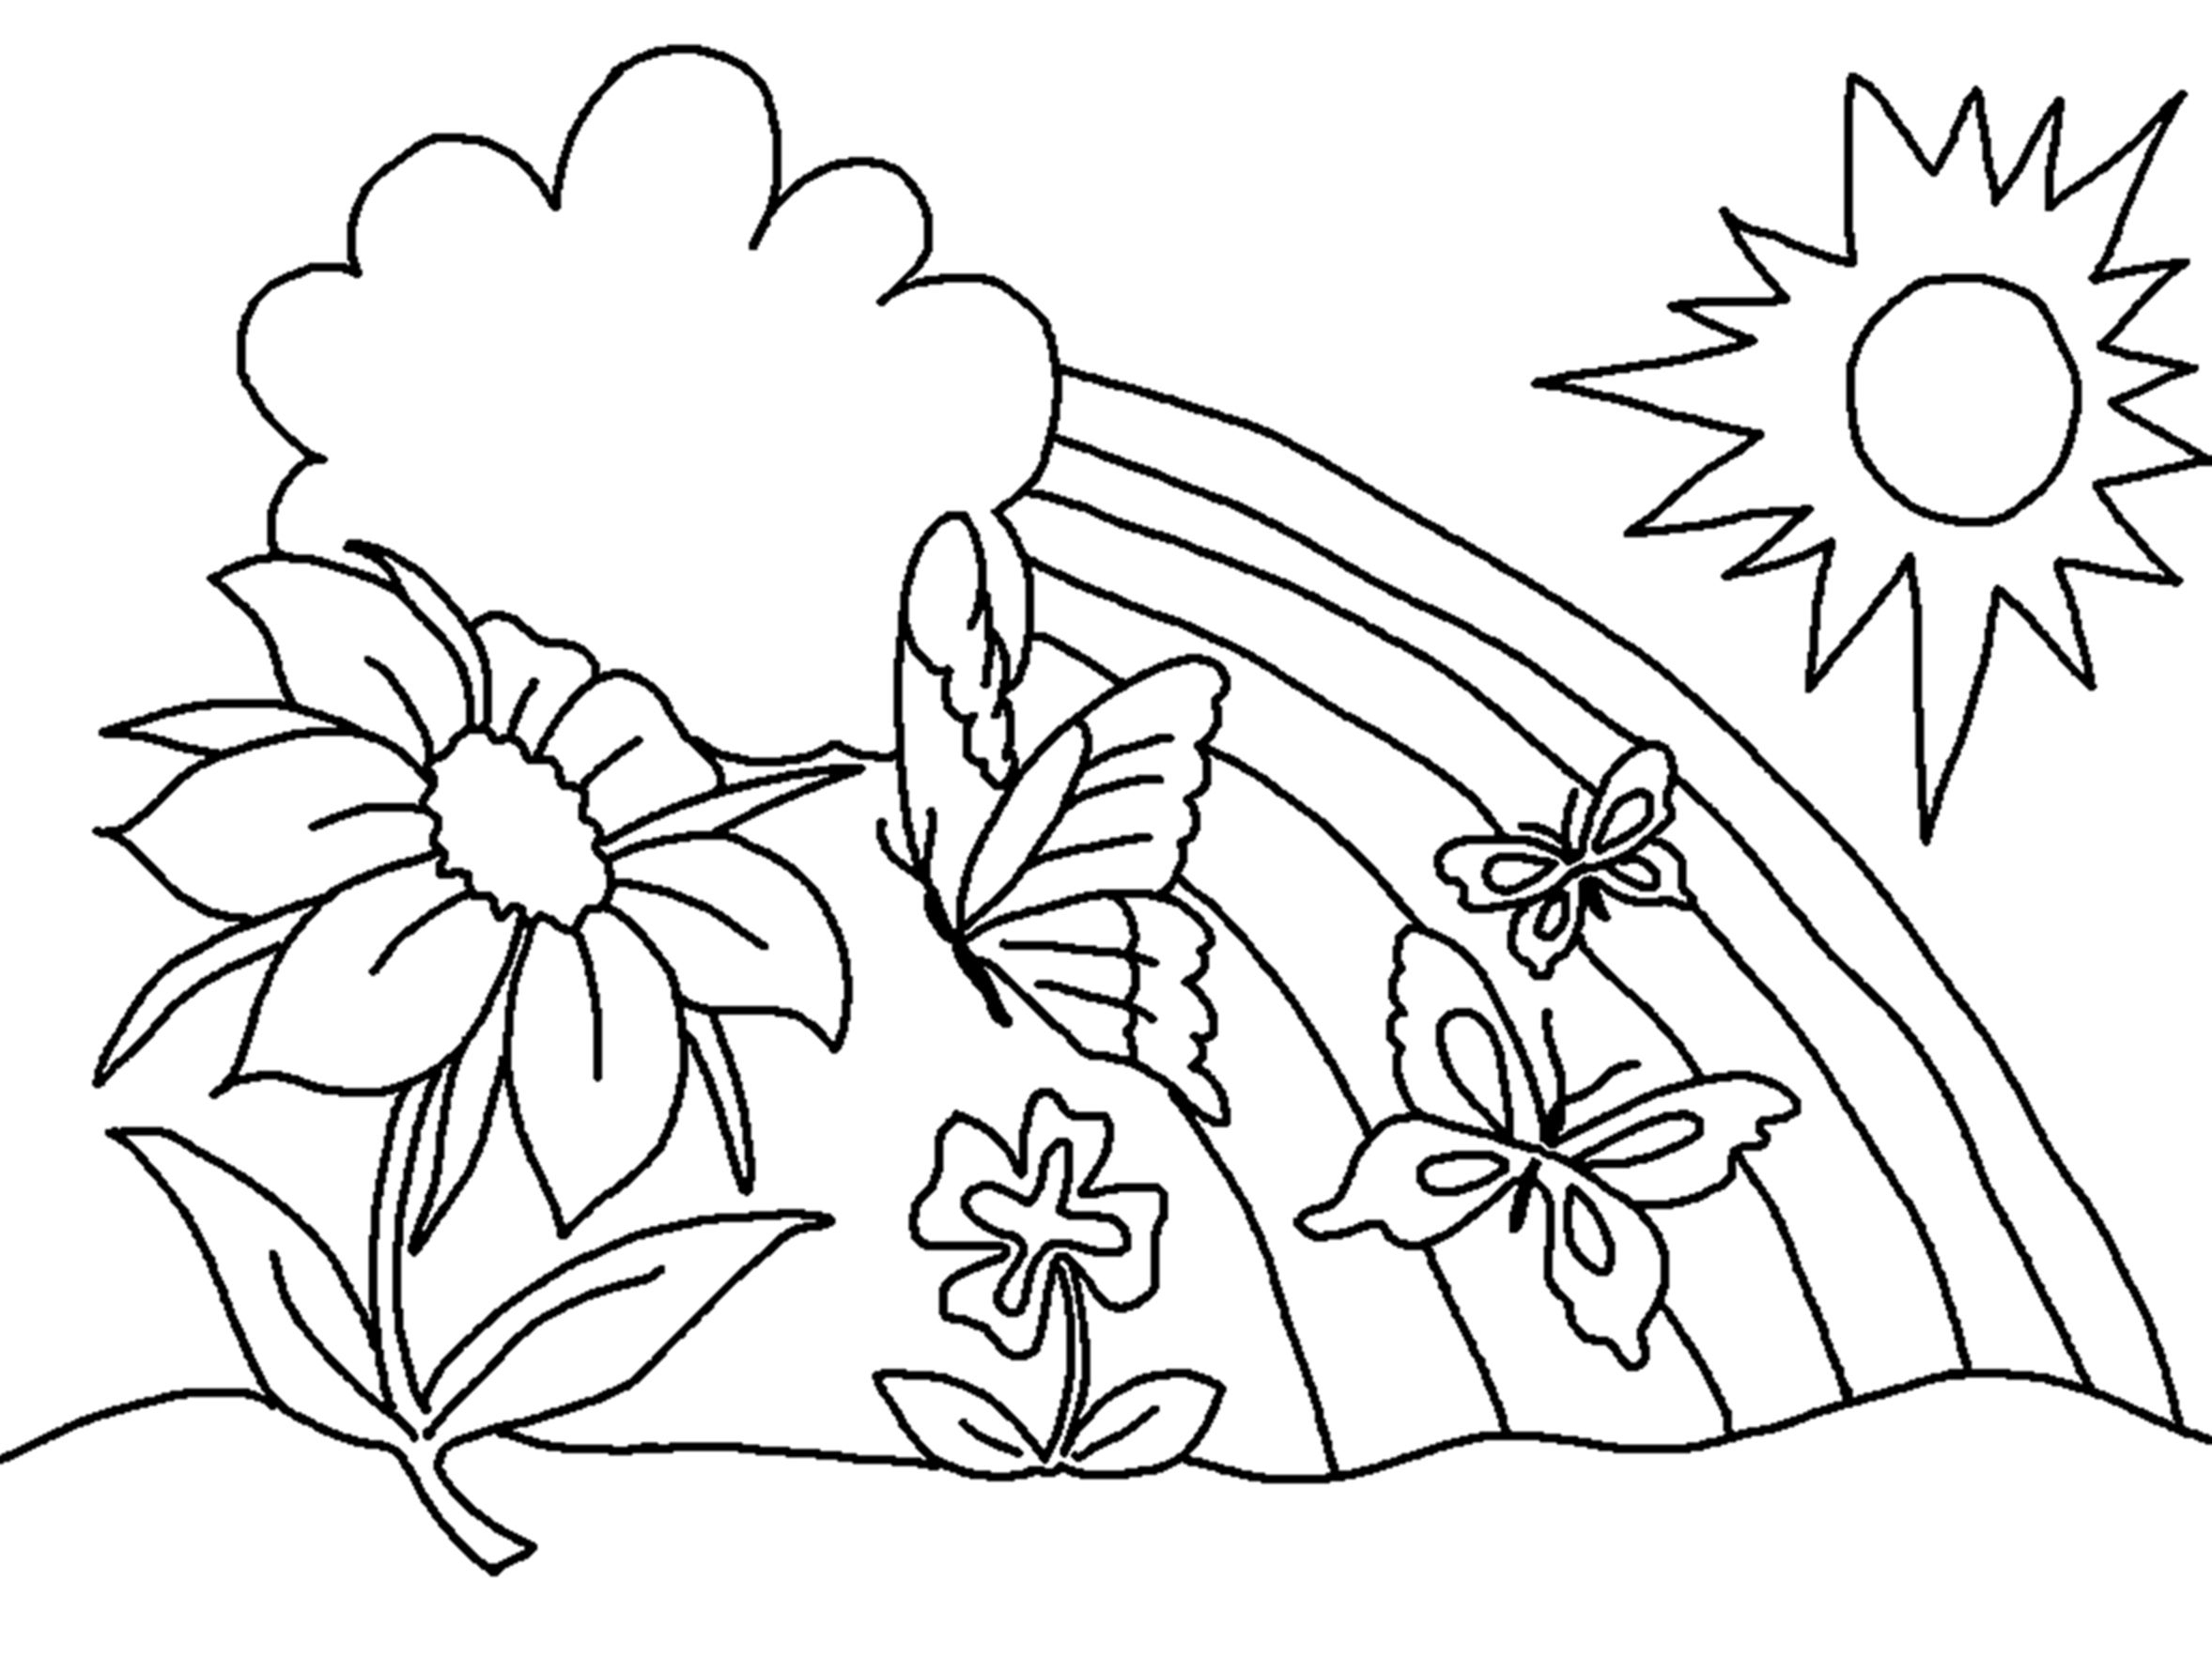 Free Printable Coloring Pages For Preschoolers – With Girls Also - Free Printable Flower Coloring Pages